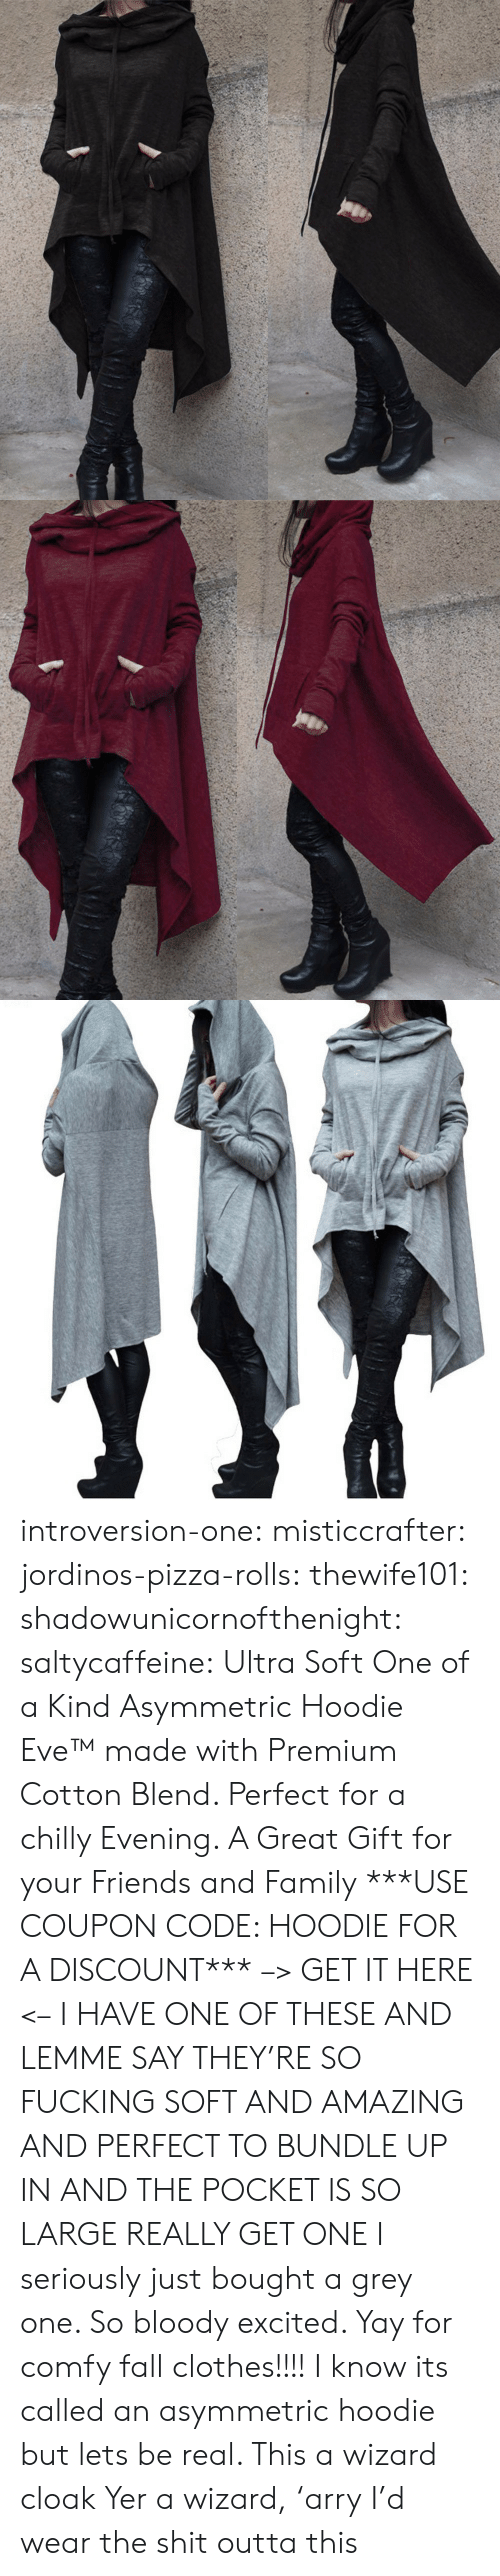 Clothes, Fall, and Family: introversion-one:  misticcrafter:  jordinos-pizza-rolls:  thewife101:  shadowunicornofthenight:  saltycaffeine:  Ultra Soft One of a Kind Asymmetric Hoodie Eve™ made with Premium Cotton Blend. Perfect for a chilly Evening. A Great Gift for your Friends and Family ***USE COUPON CODE: HOODIE FOR A DISCOUNT*** –> GET IT HERE <–   I HAVE ONE OF THESE AND LEMME SAY THEY'RE SO FUCKING SOFT AND AMAZING AND PERFECT TO BUNDLE UP IN AND THE POCKET IS SO LARGE REALLY GET ONE   I seriously just bought a grey one. So bloody excited. Yay for comfy fall clothes!!!!    I know its called an asymmetric hoodie but lets be real. This a wizard cloak  Yer a wizard, 'arry   I'd wear the shit outta this